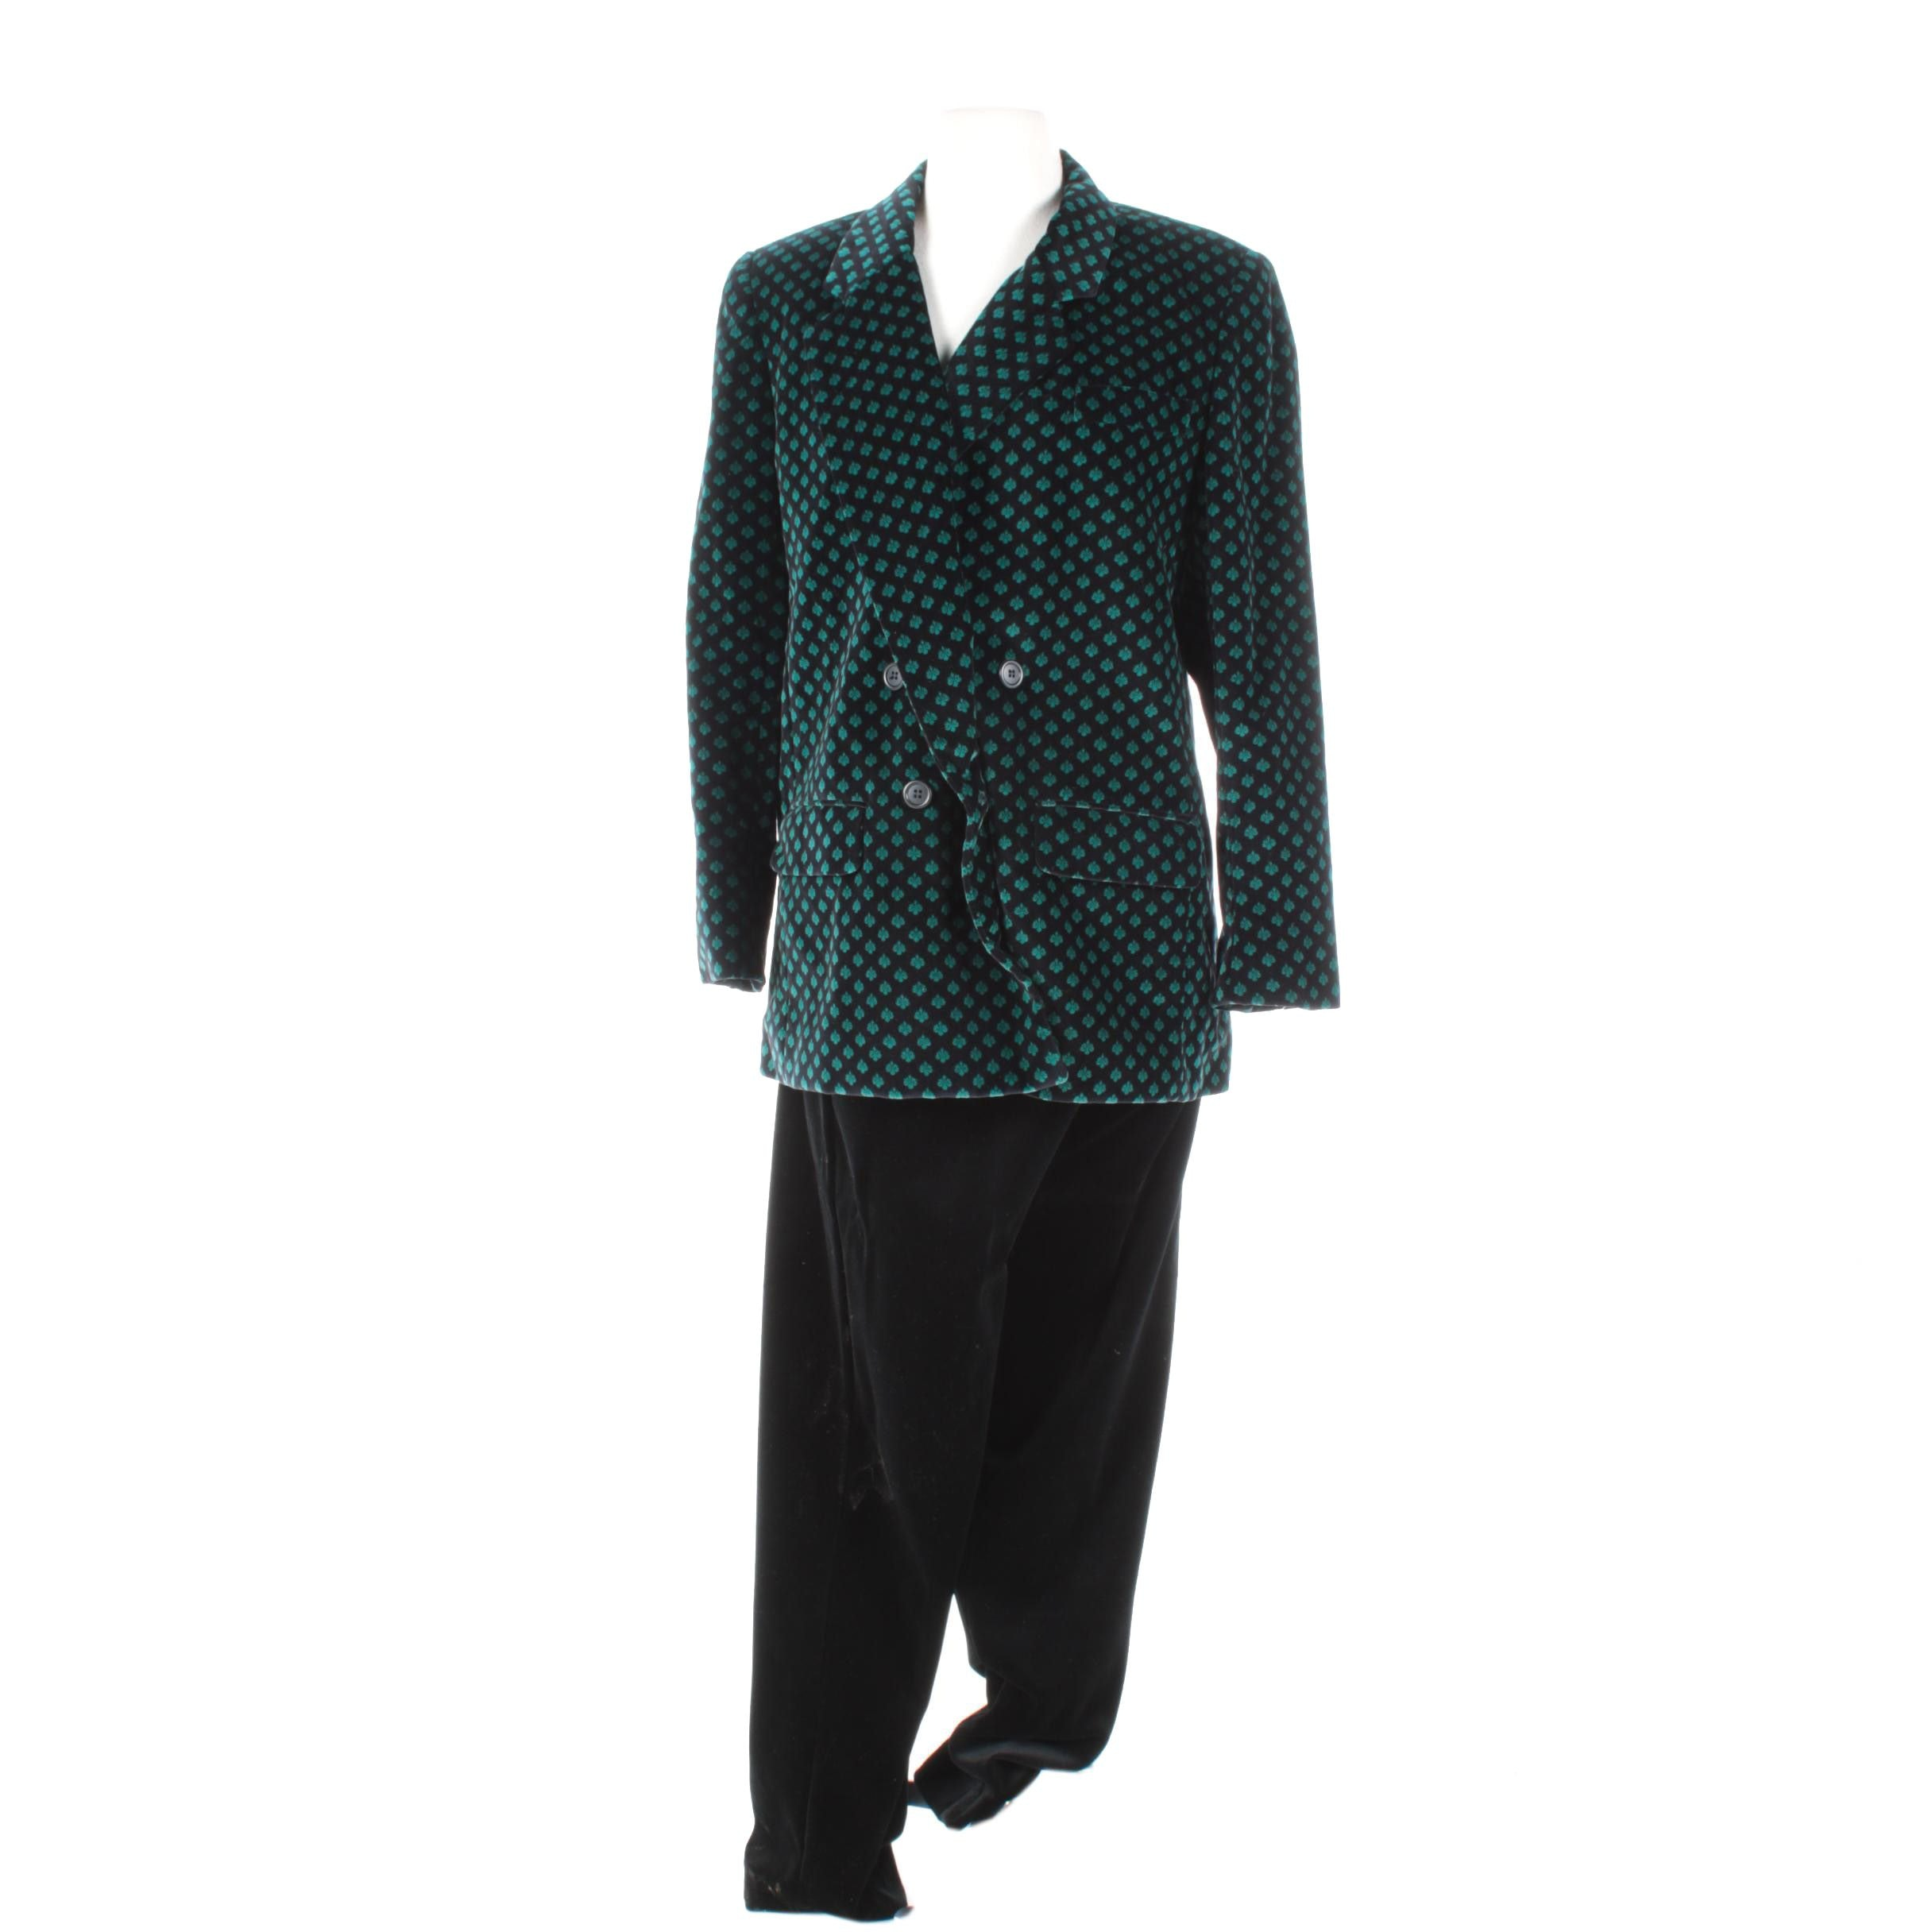 Women's Evan Picone Suit Jacket and Pants